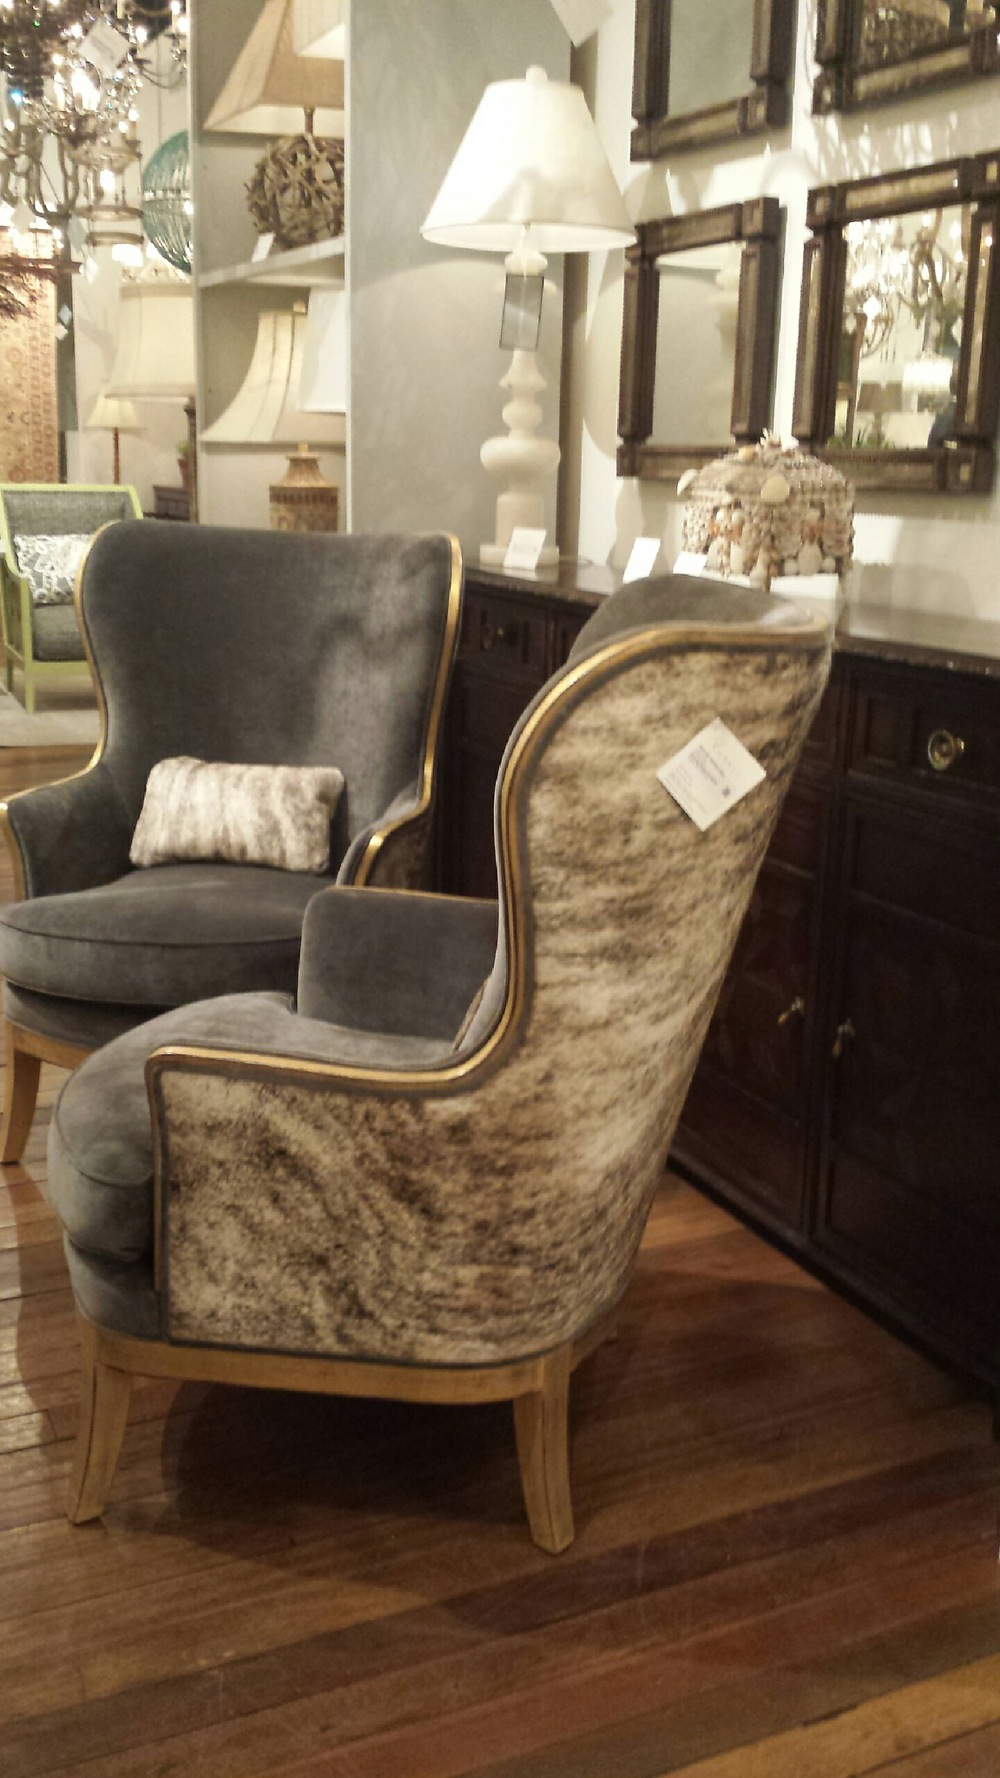 Gorgeous chairs with hair on hide and suede!